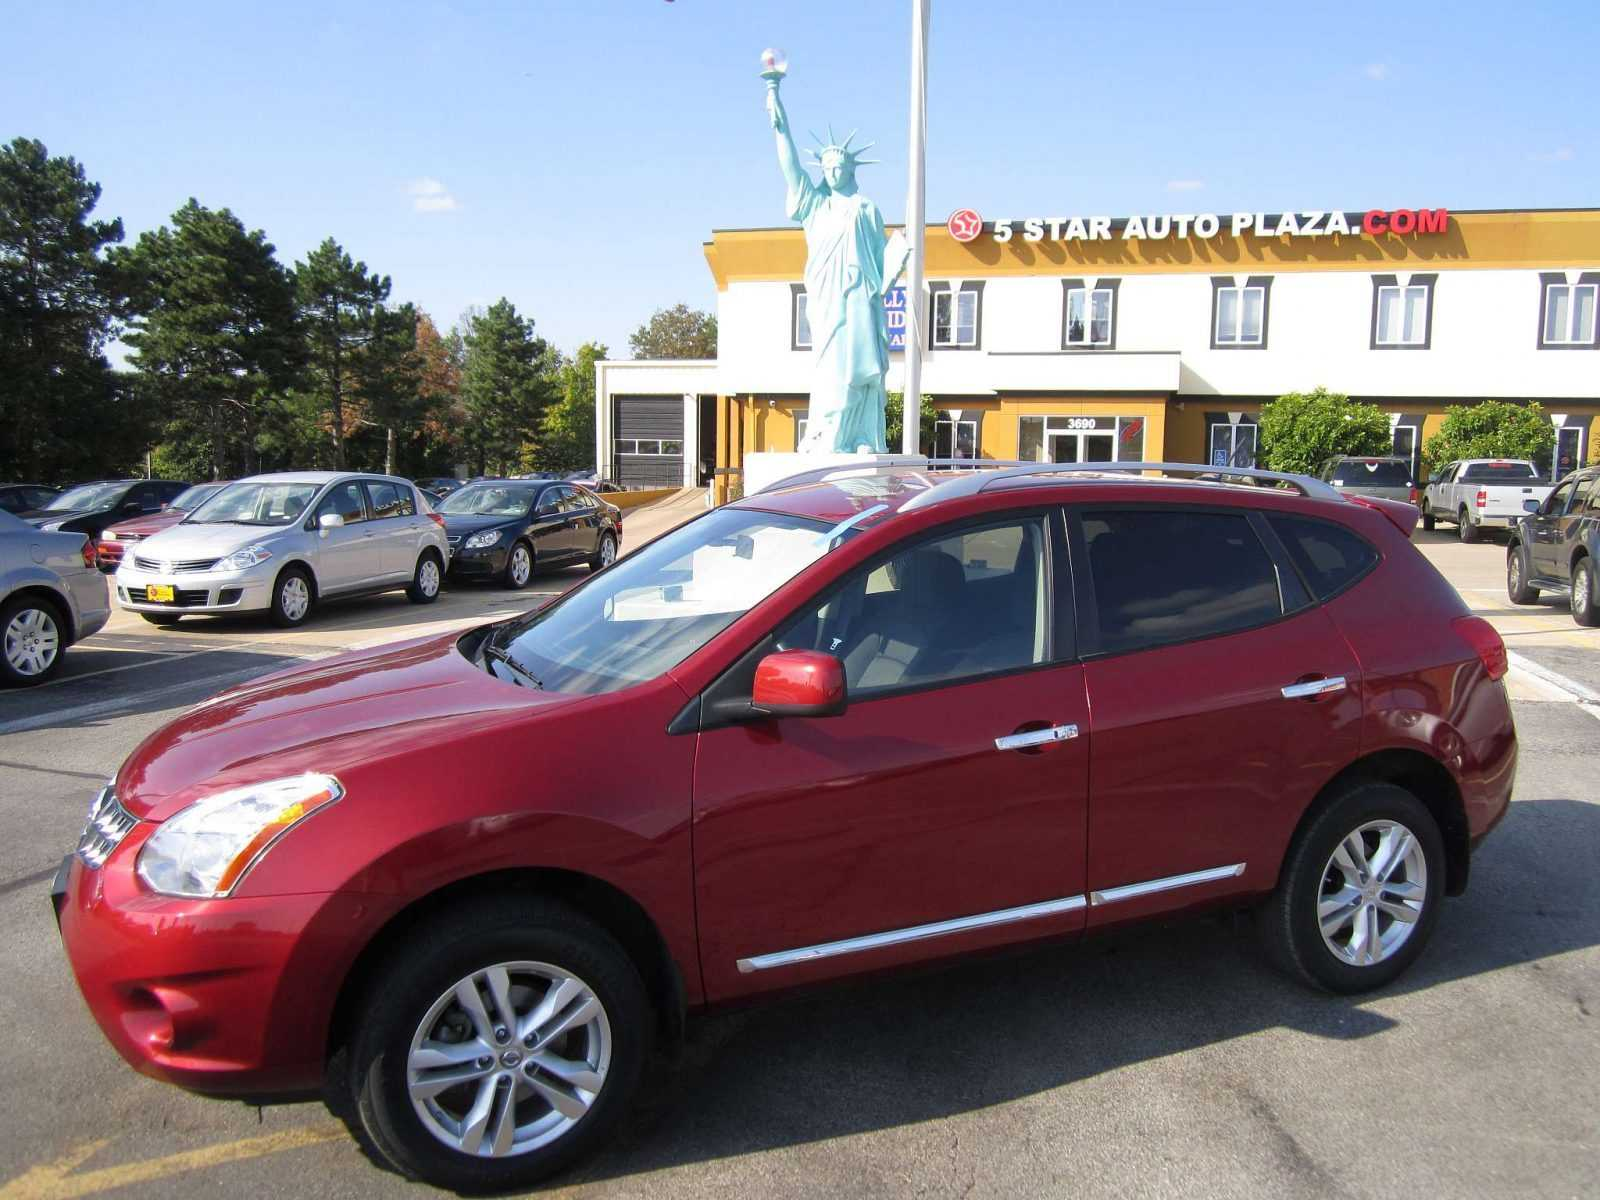 First Time Auto Loans in O'Fallon / St. Charles County